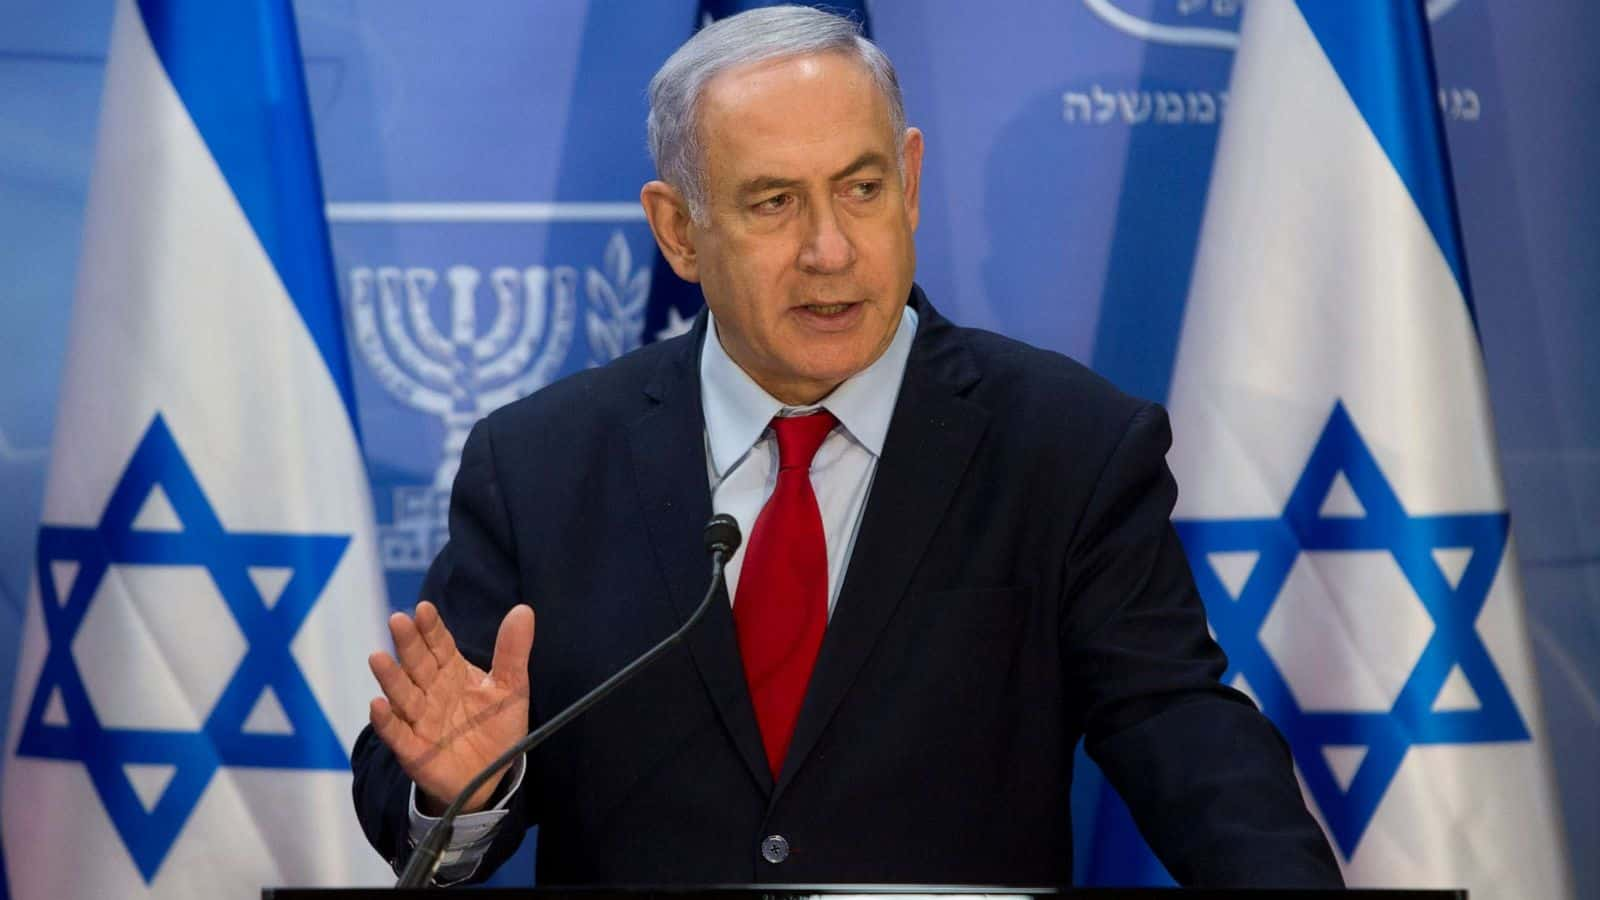 Netanyahu makes surprise campaign pitch to Arab voters 3